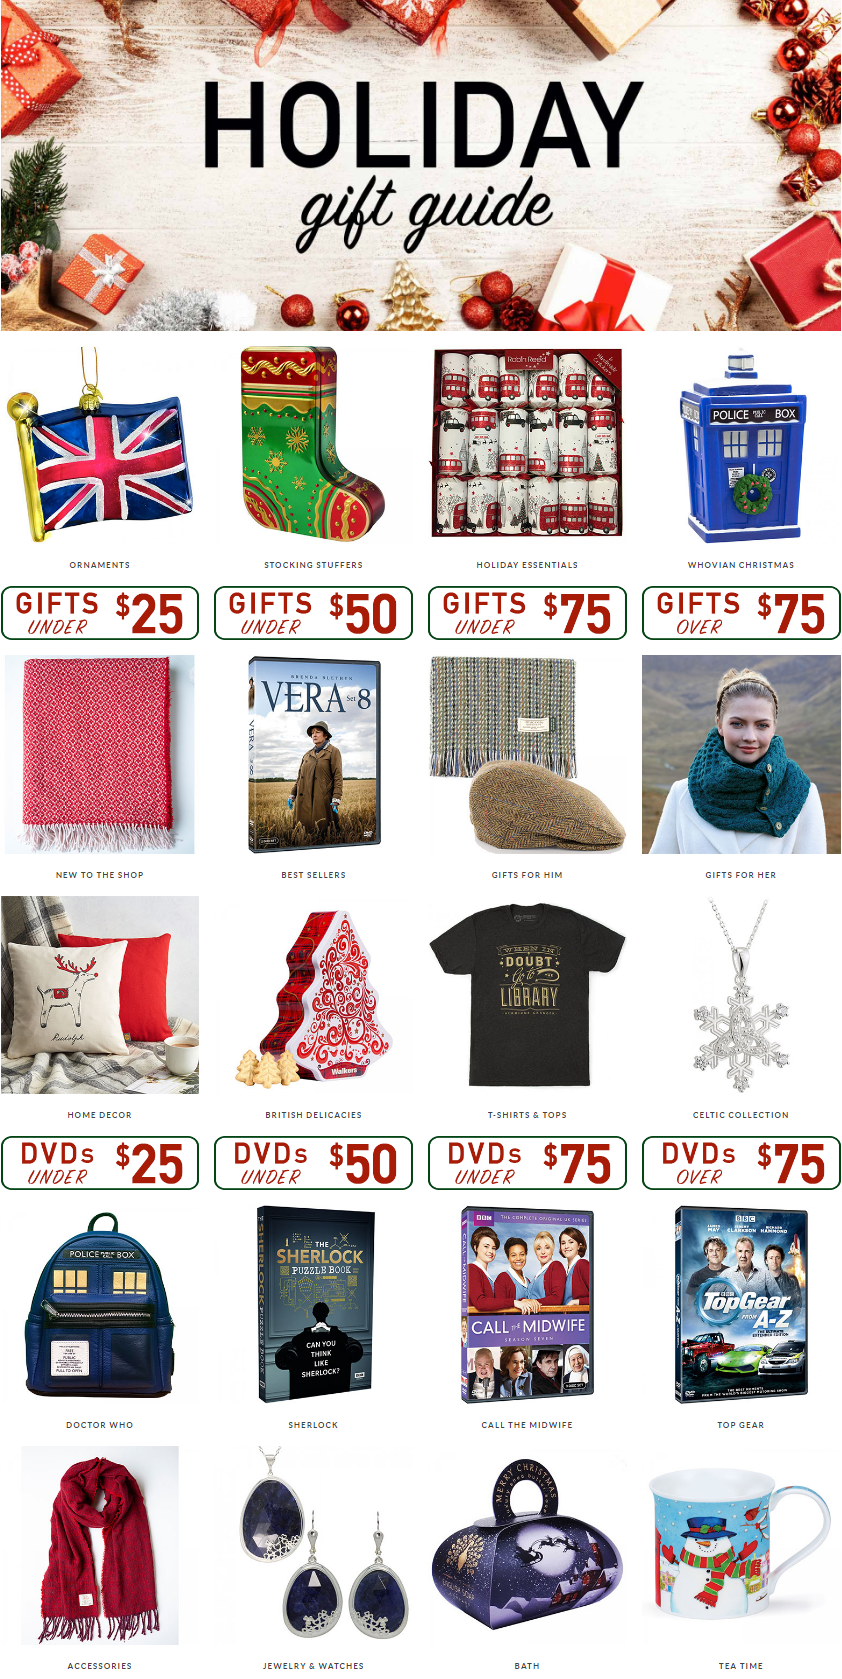 Check out the holiday gift guide for all the best ideas for presents and gifts for your favorite boa...